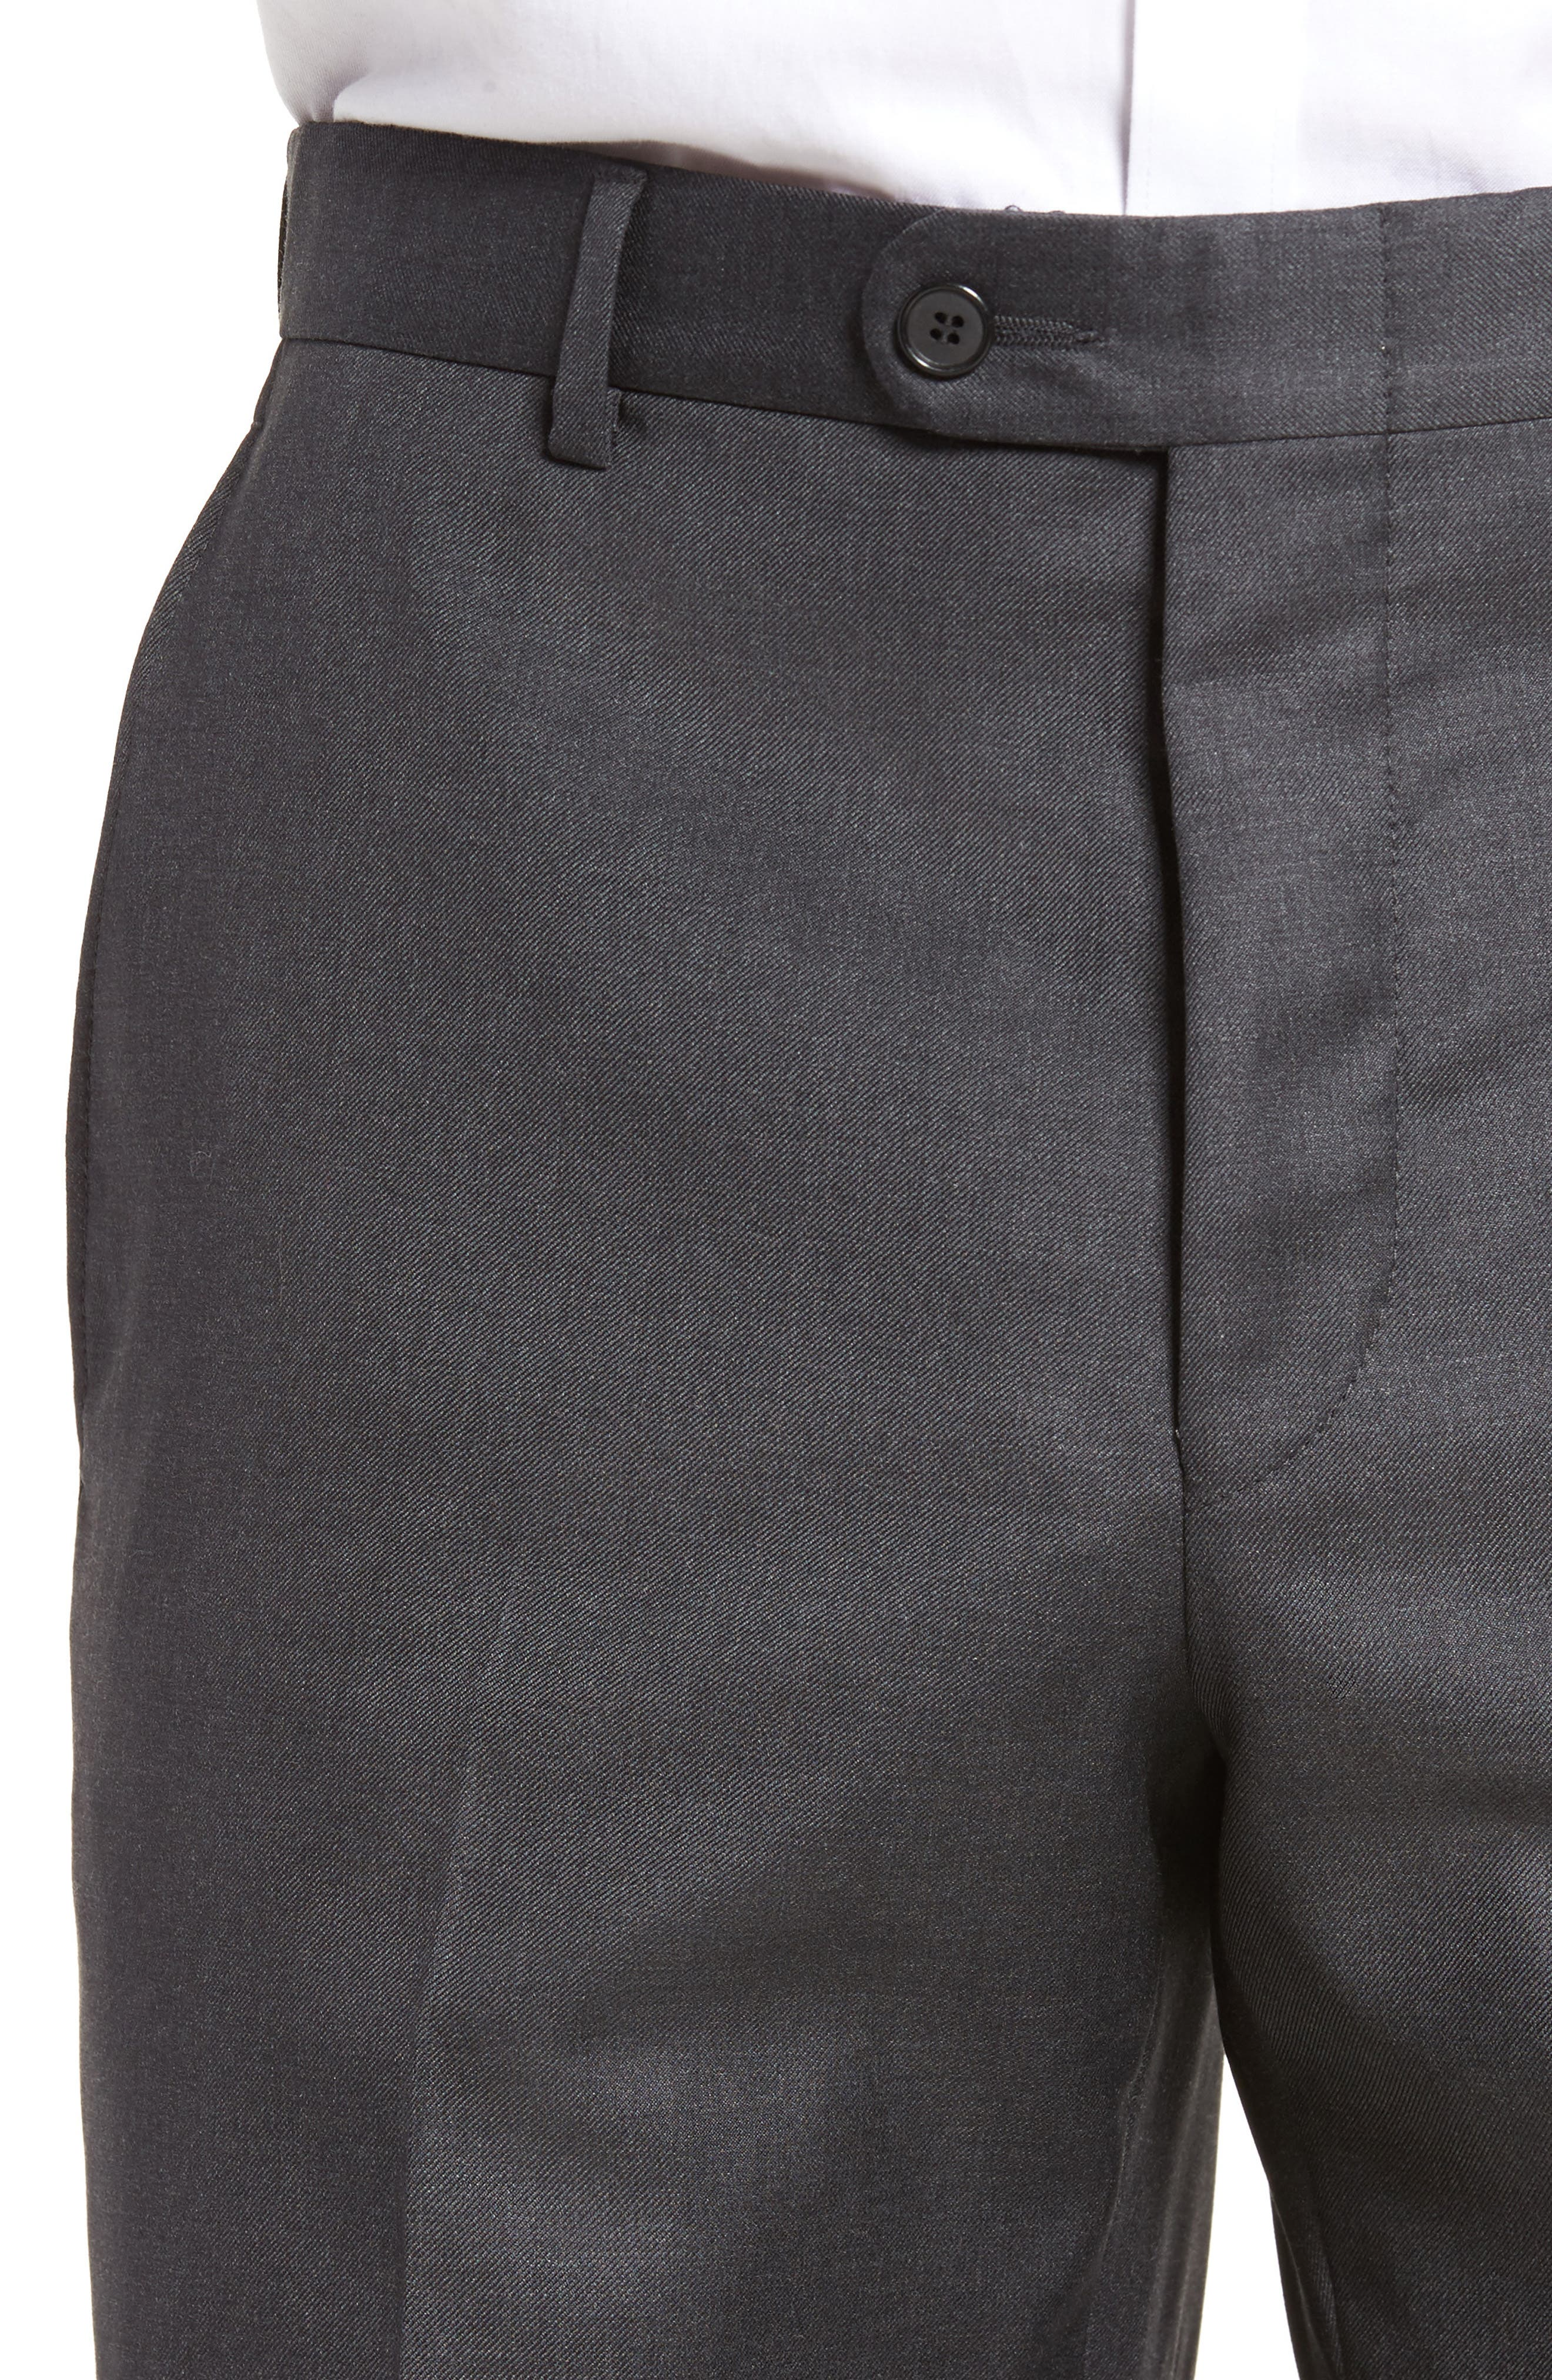 Classic B Fit Flat Front Solid Wool Trousers,                             Alternate thumbnail 5, color,                             CHARCOAL SHARKSKIN